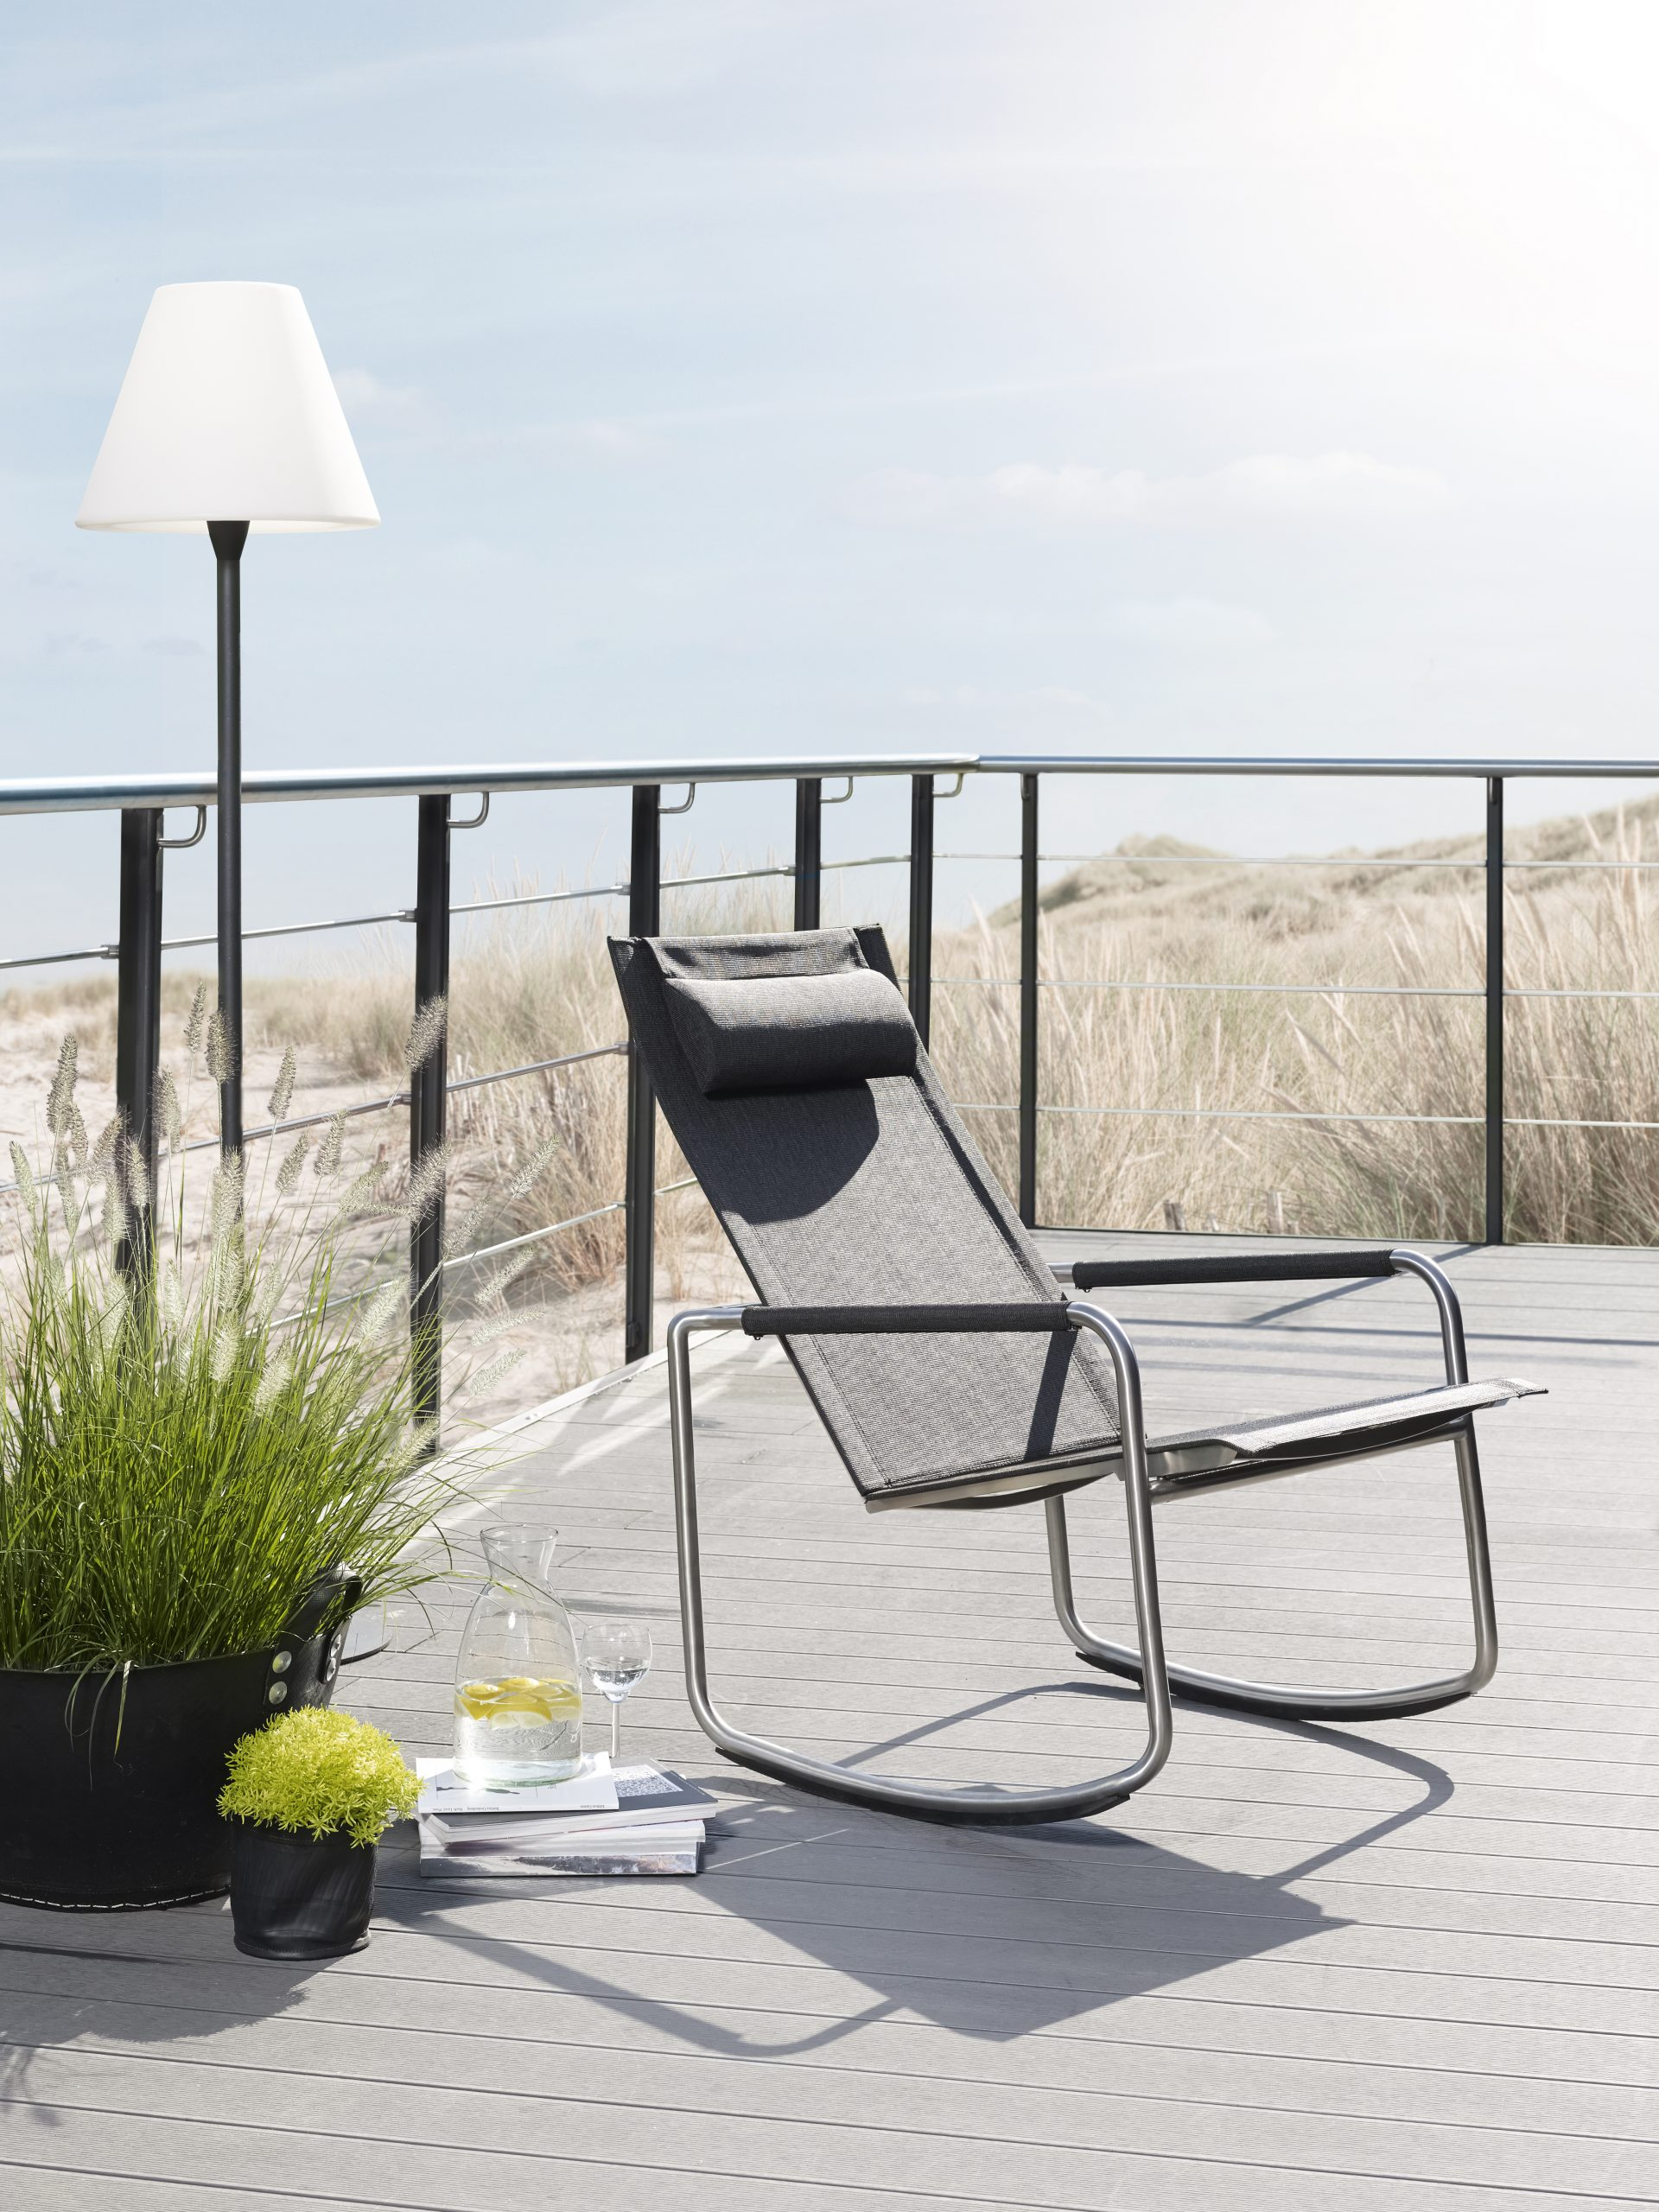 Jardin Rocking Deck Chair By Solpuri | Stylepark intérieur Rocking Chair Jardin